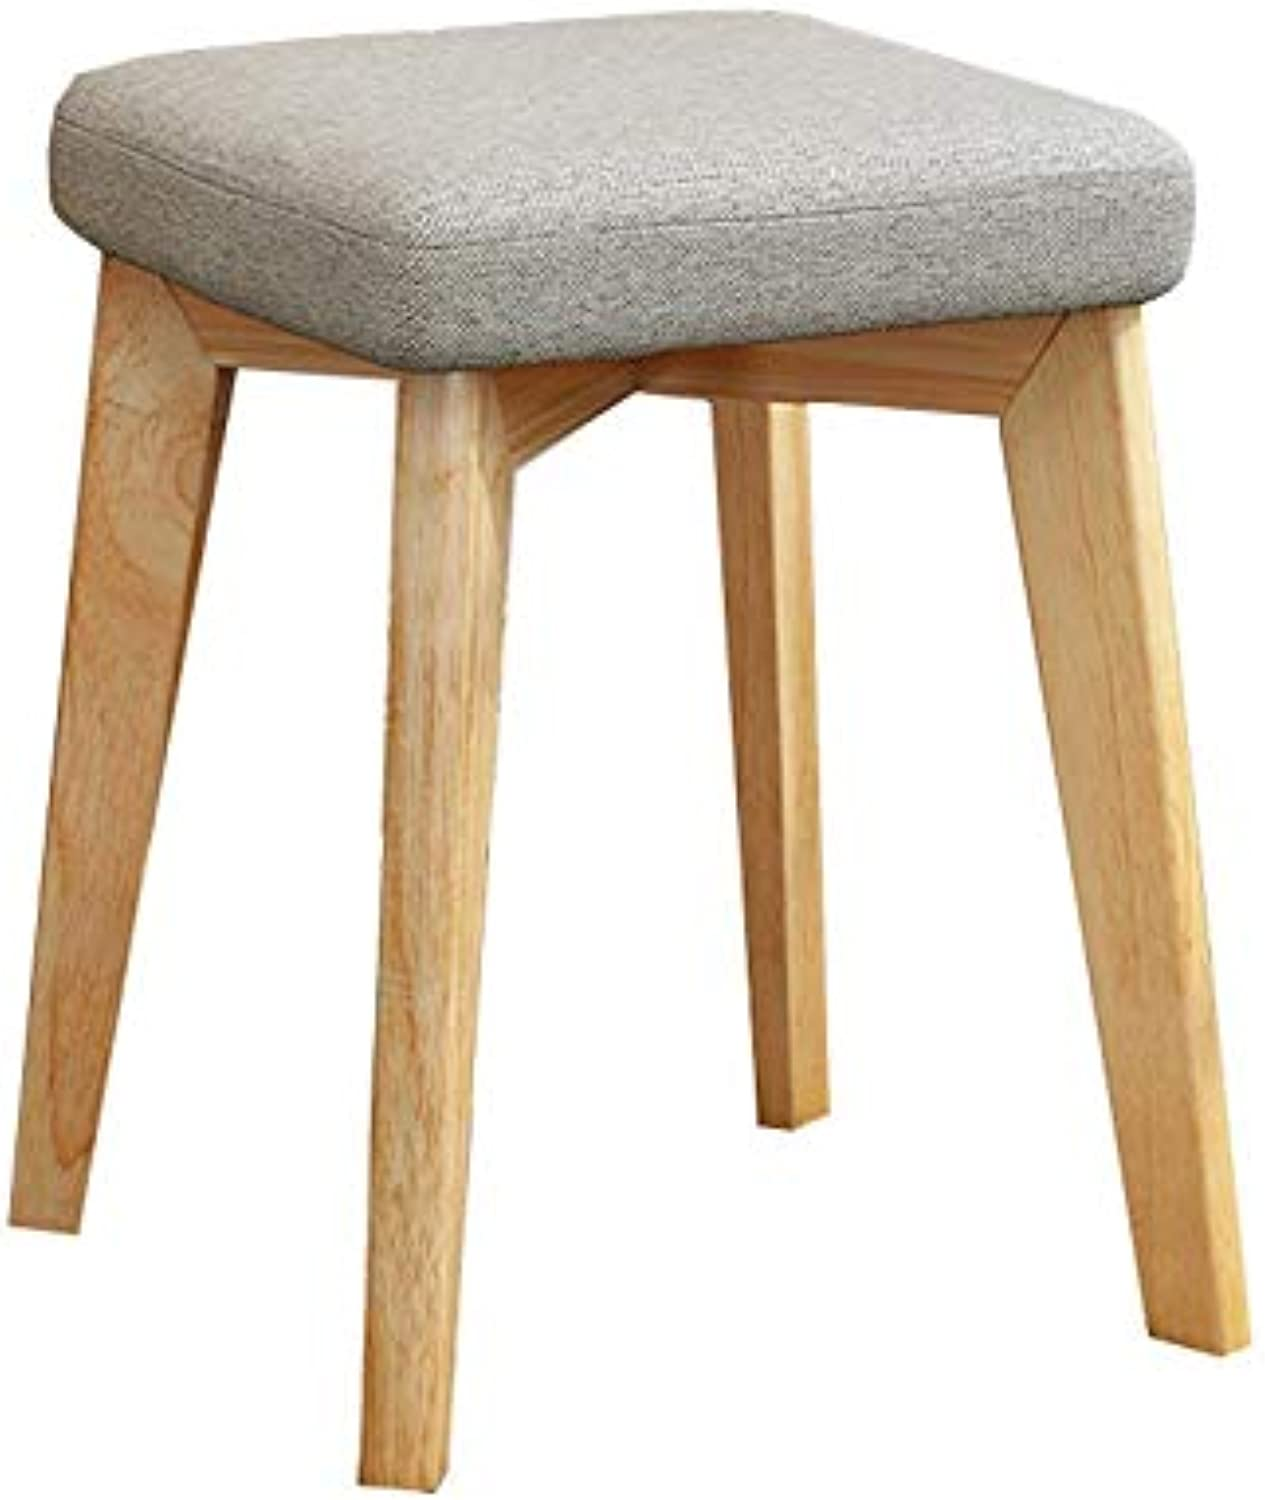 Square stool Solid Wood Chair Home Dining stool Adult Chair Fabric stool Rubber Wooden Bench 32  32  45cm